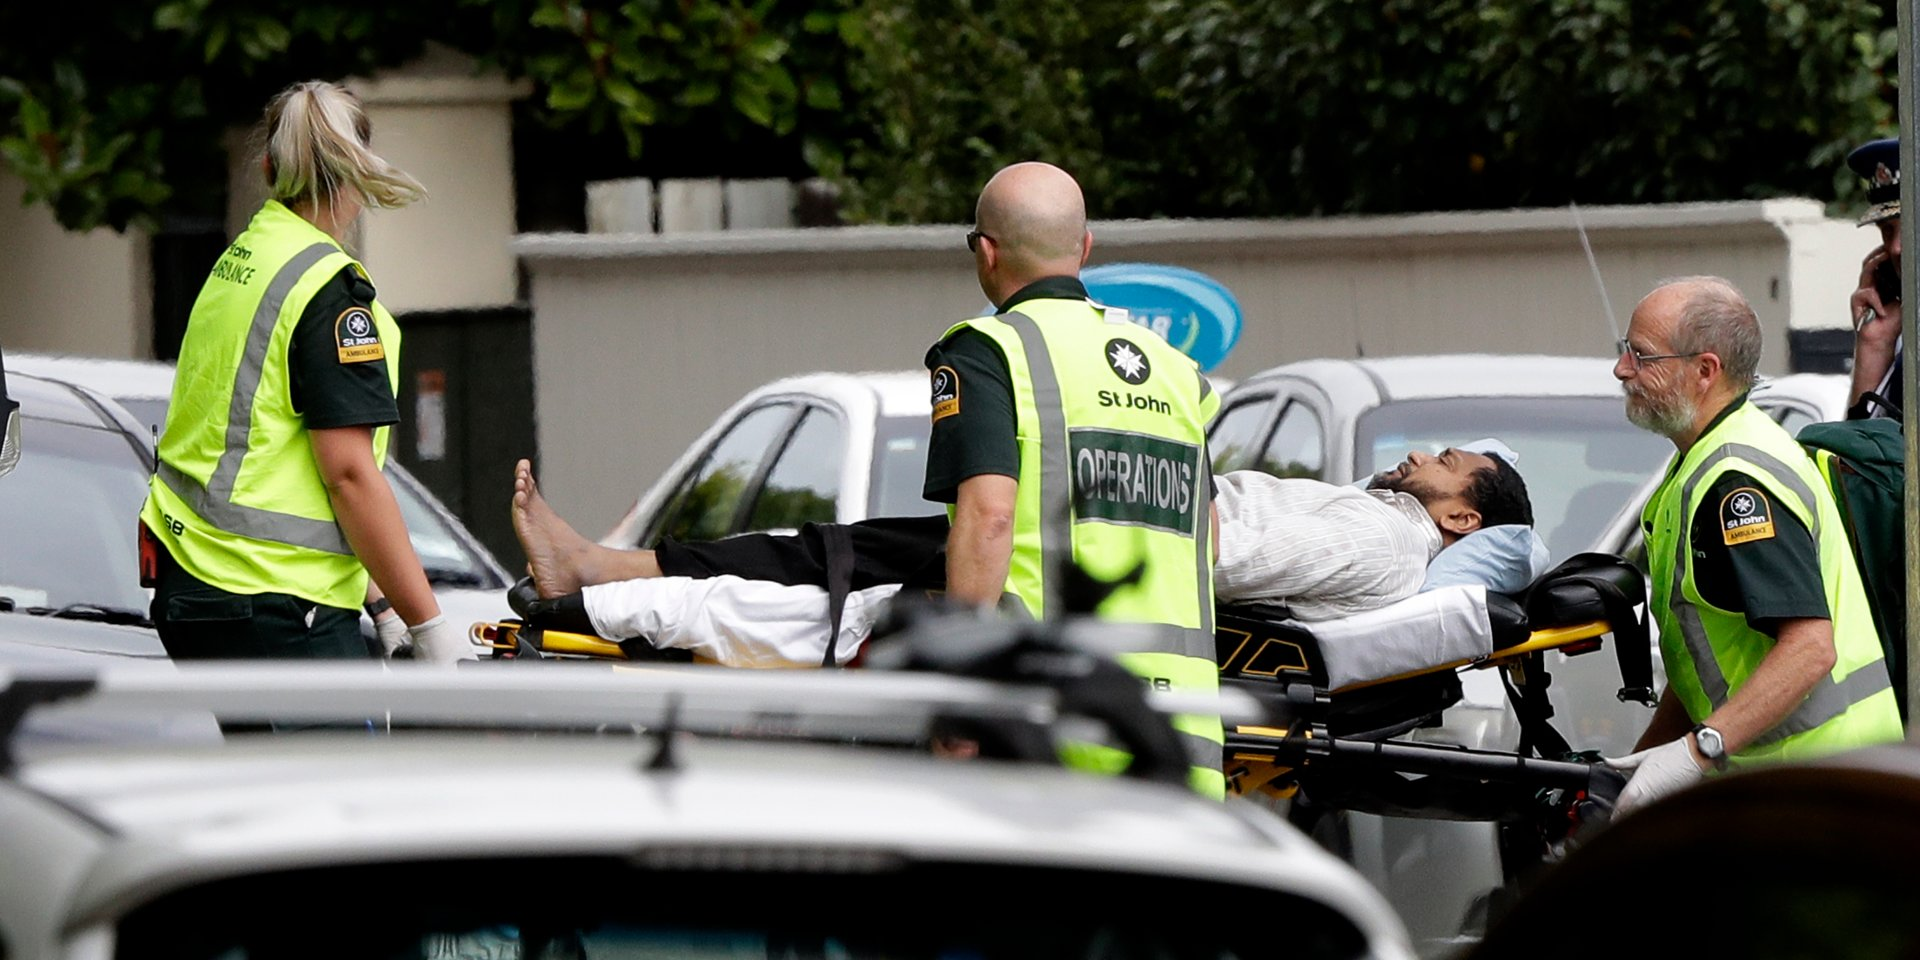 New Zealand Shooter Live Stream Image: PewDiePie Provides Statement Following New Zealand Shooting